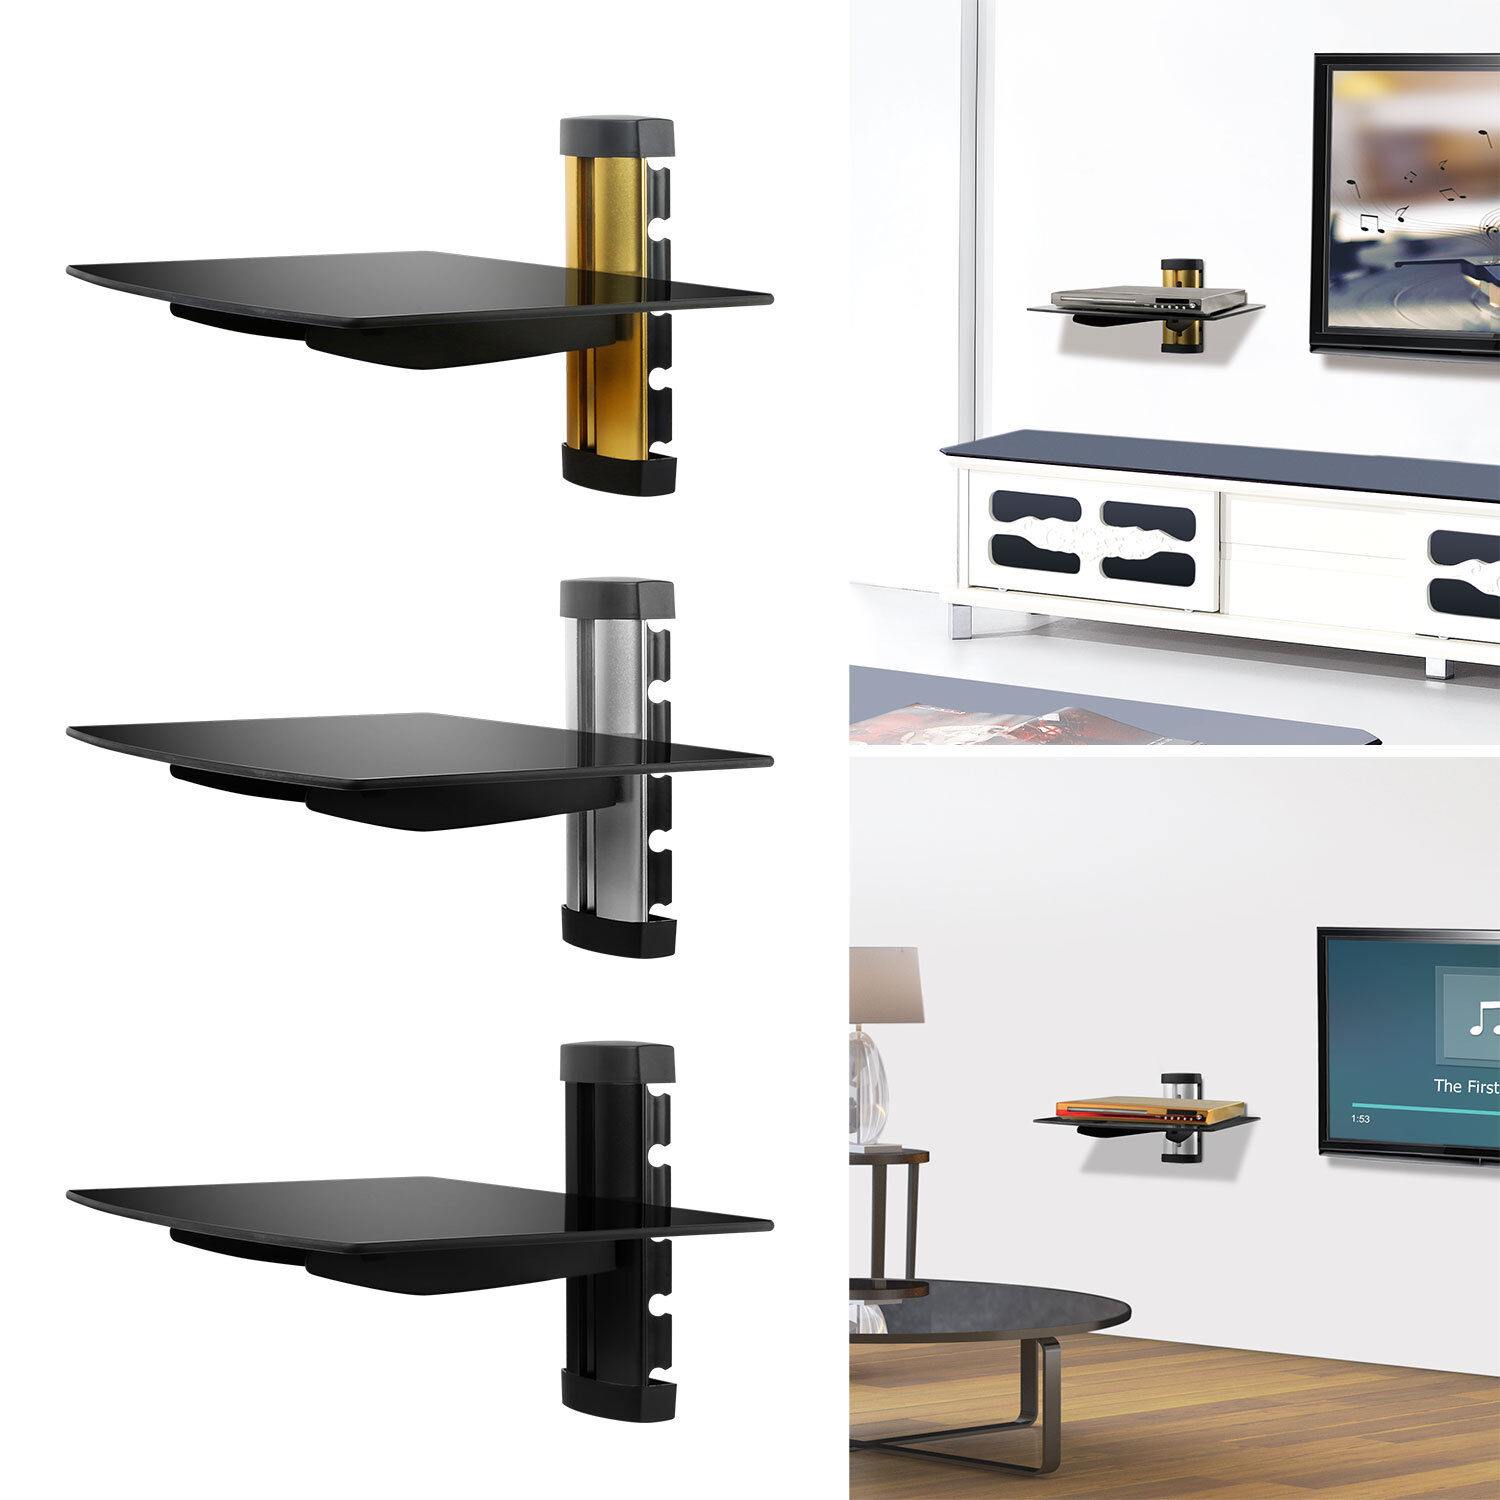 Details About 2 Tier Dual Glass Shelf Wall Mount Under Tv Cable Box Component Dvr Dvd Bracket